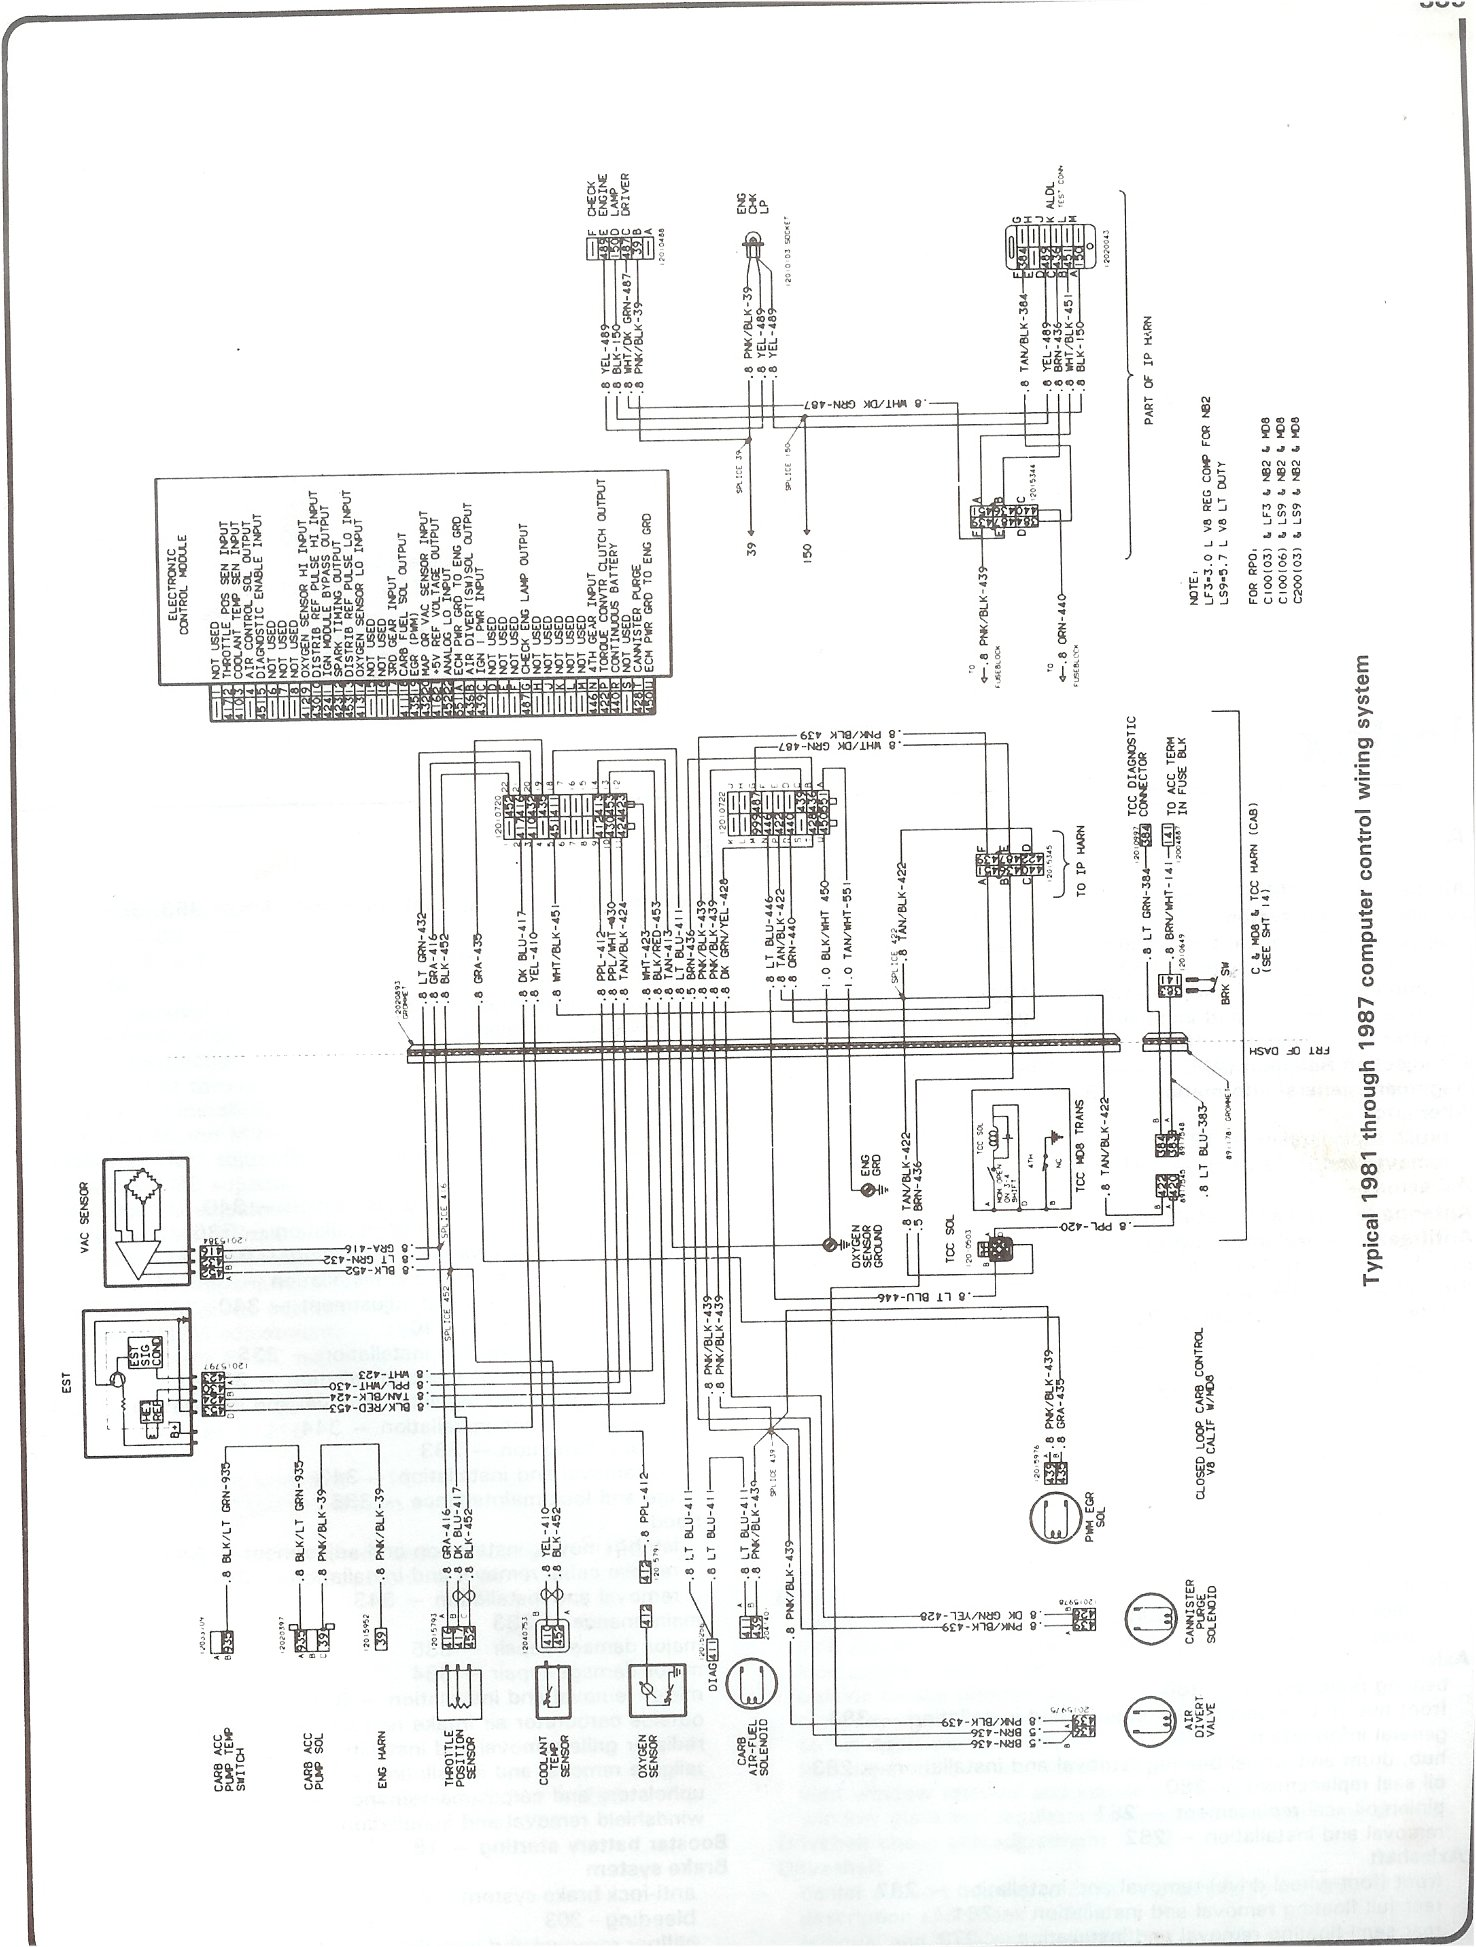 73 Gmc Wiring Harness Auto Electrical Diagram 2000 W4500